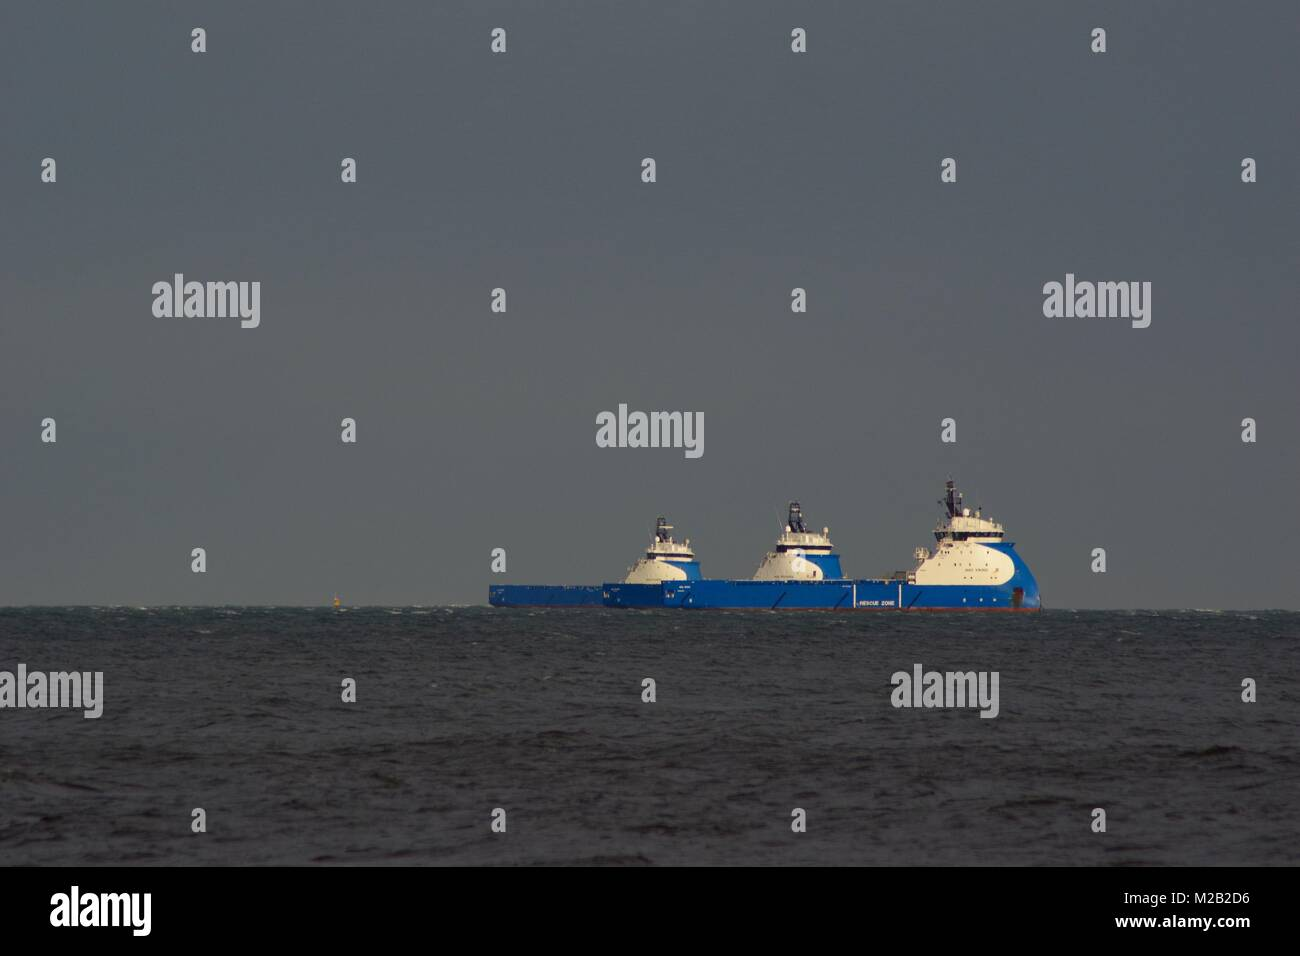 Three Medium Sized Oil Platform Supply Vessels, Nao Viking, Prosper and Power. Moored Offshore Aberdeen, North Sea, - Stock Image